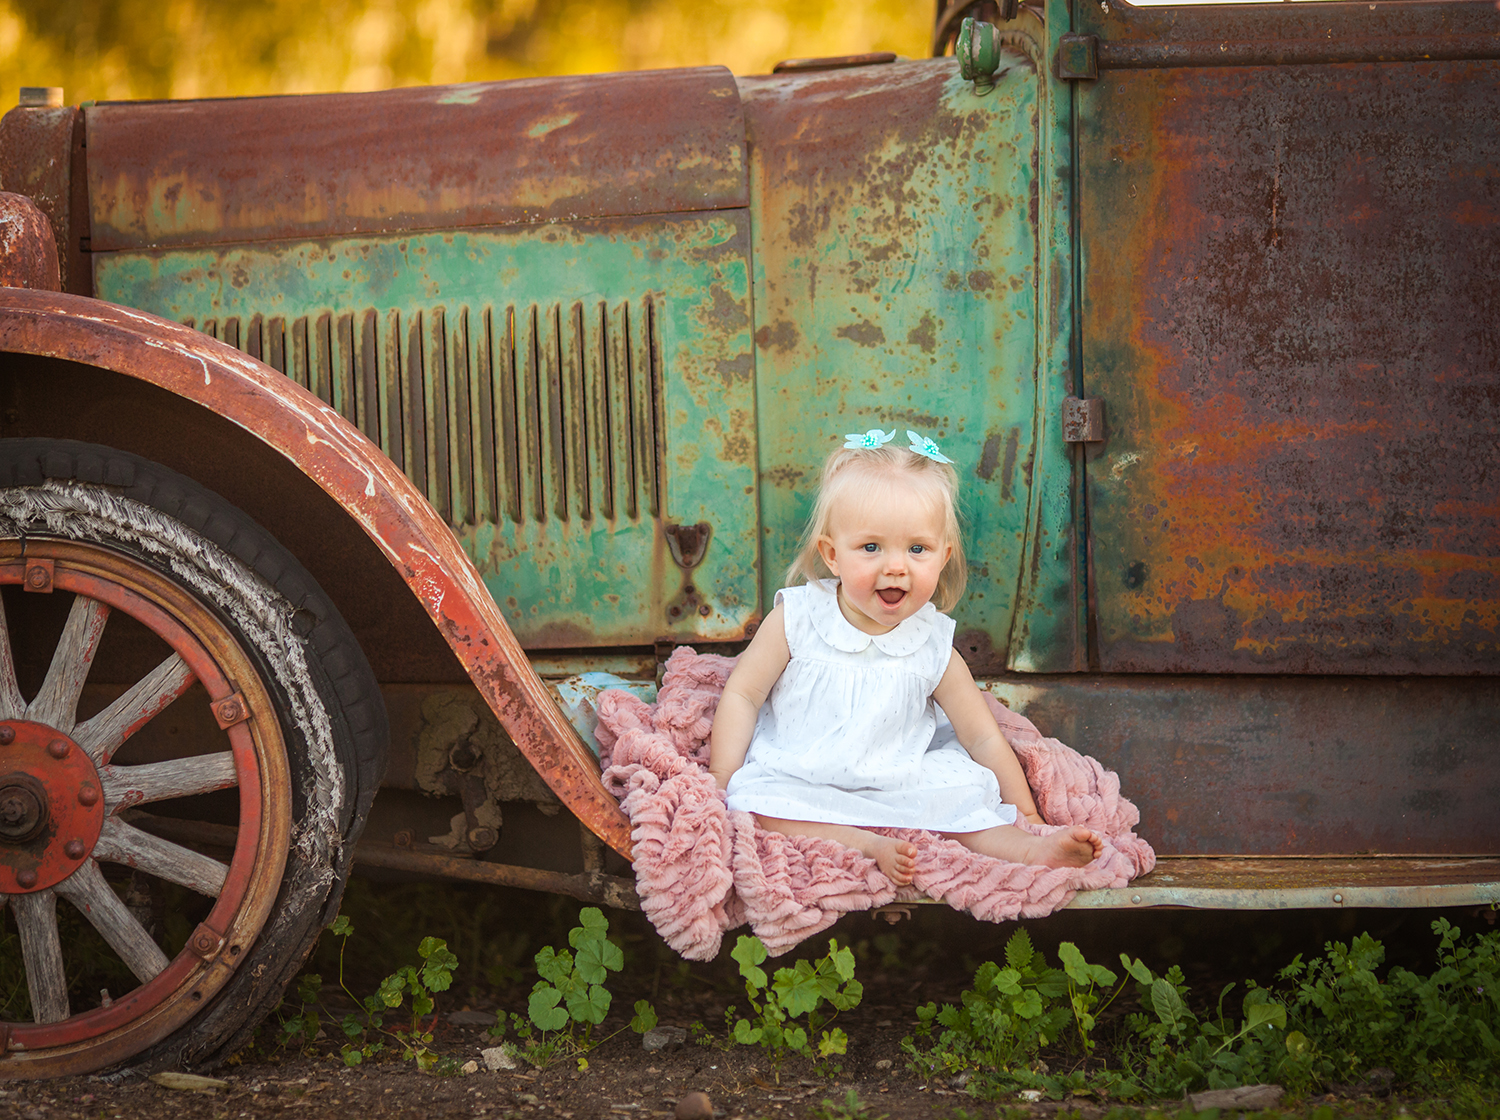 Dena_Rooney_baby photographer_0019.jpg